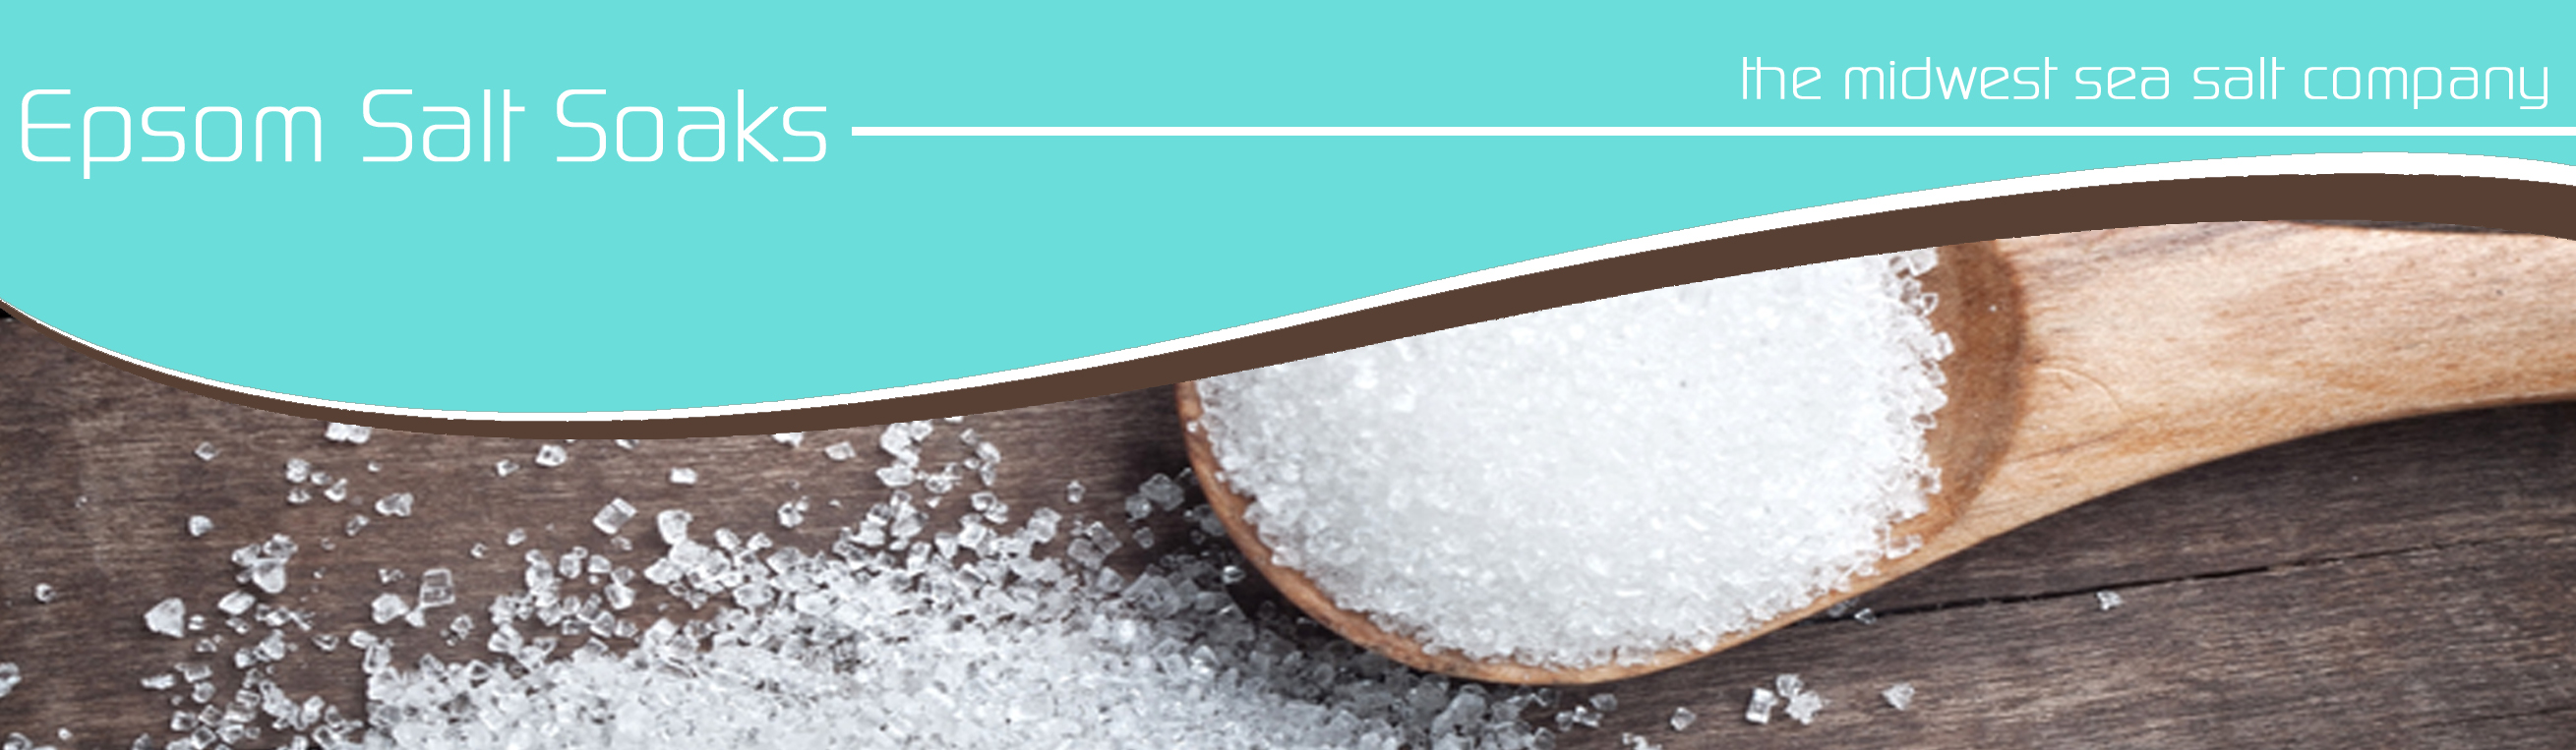 epsom-salt-soaks-midwest-sea-salt.jpg